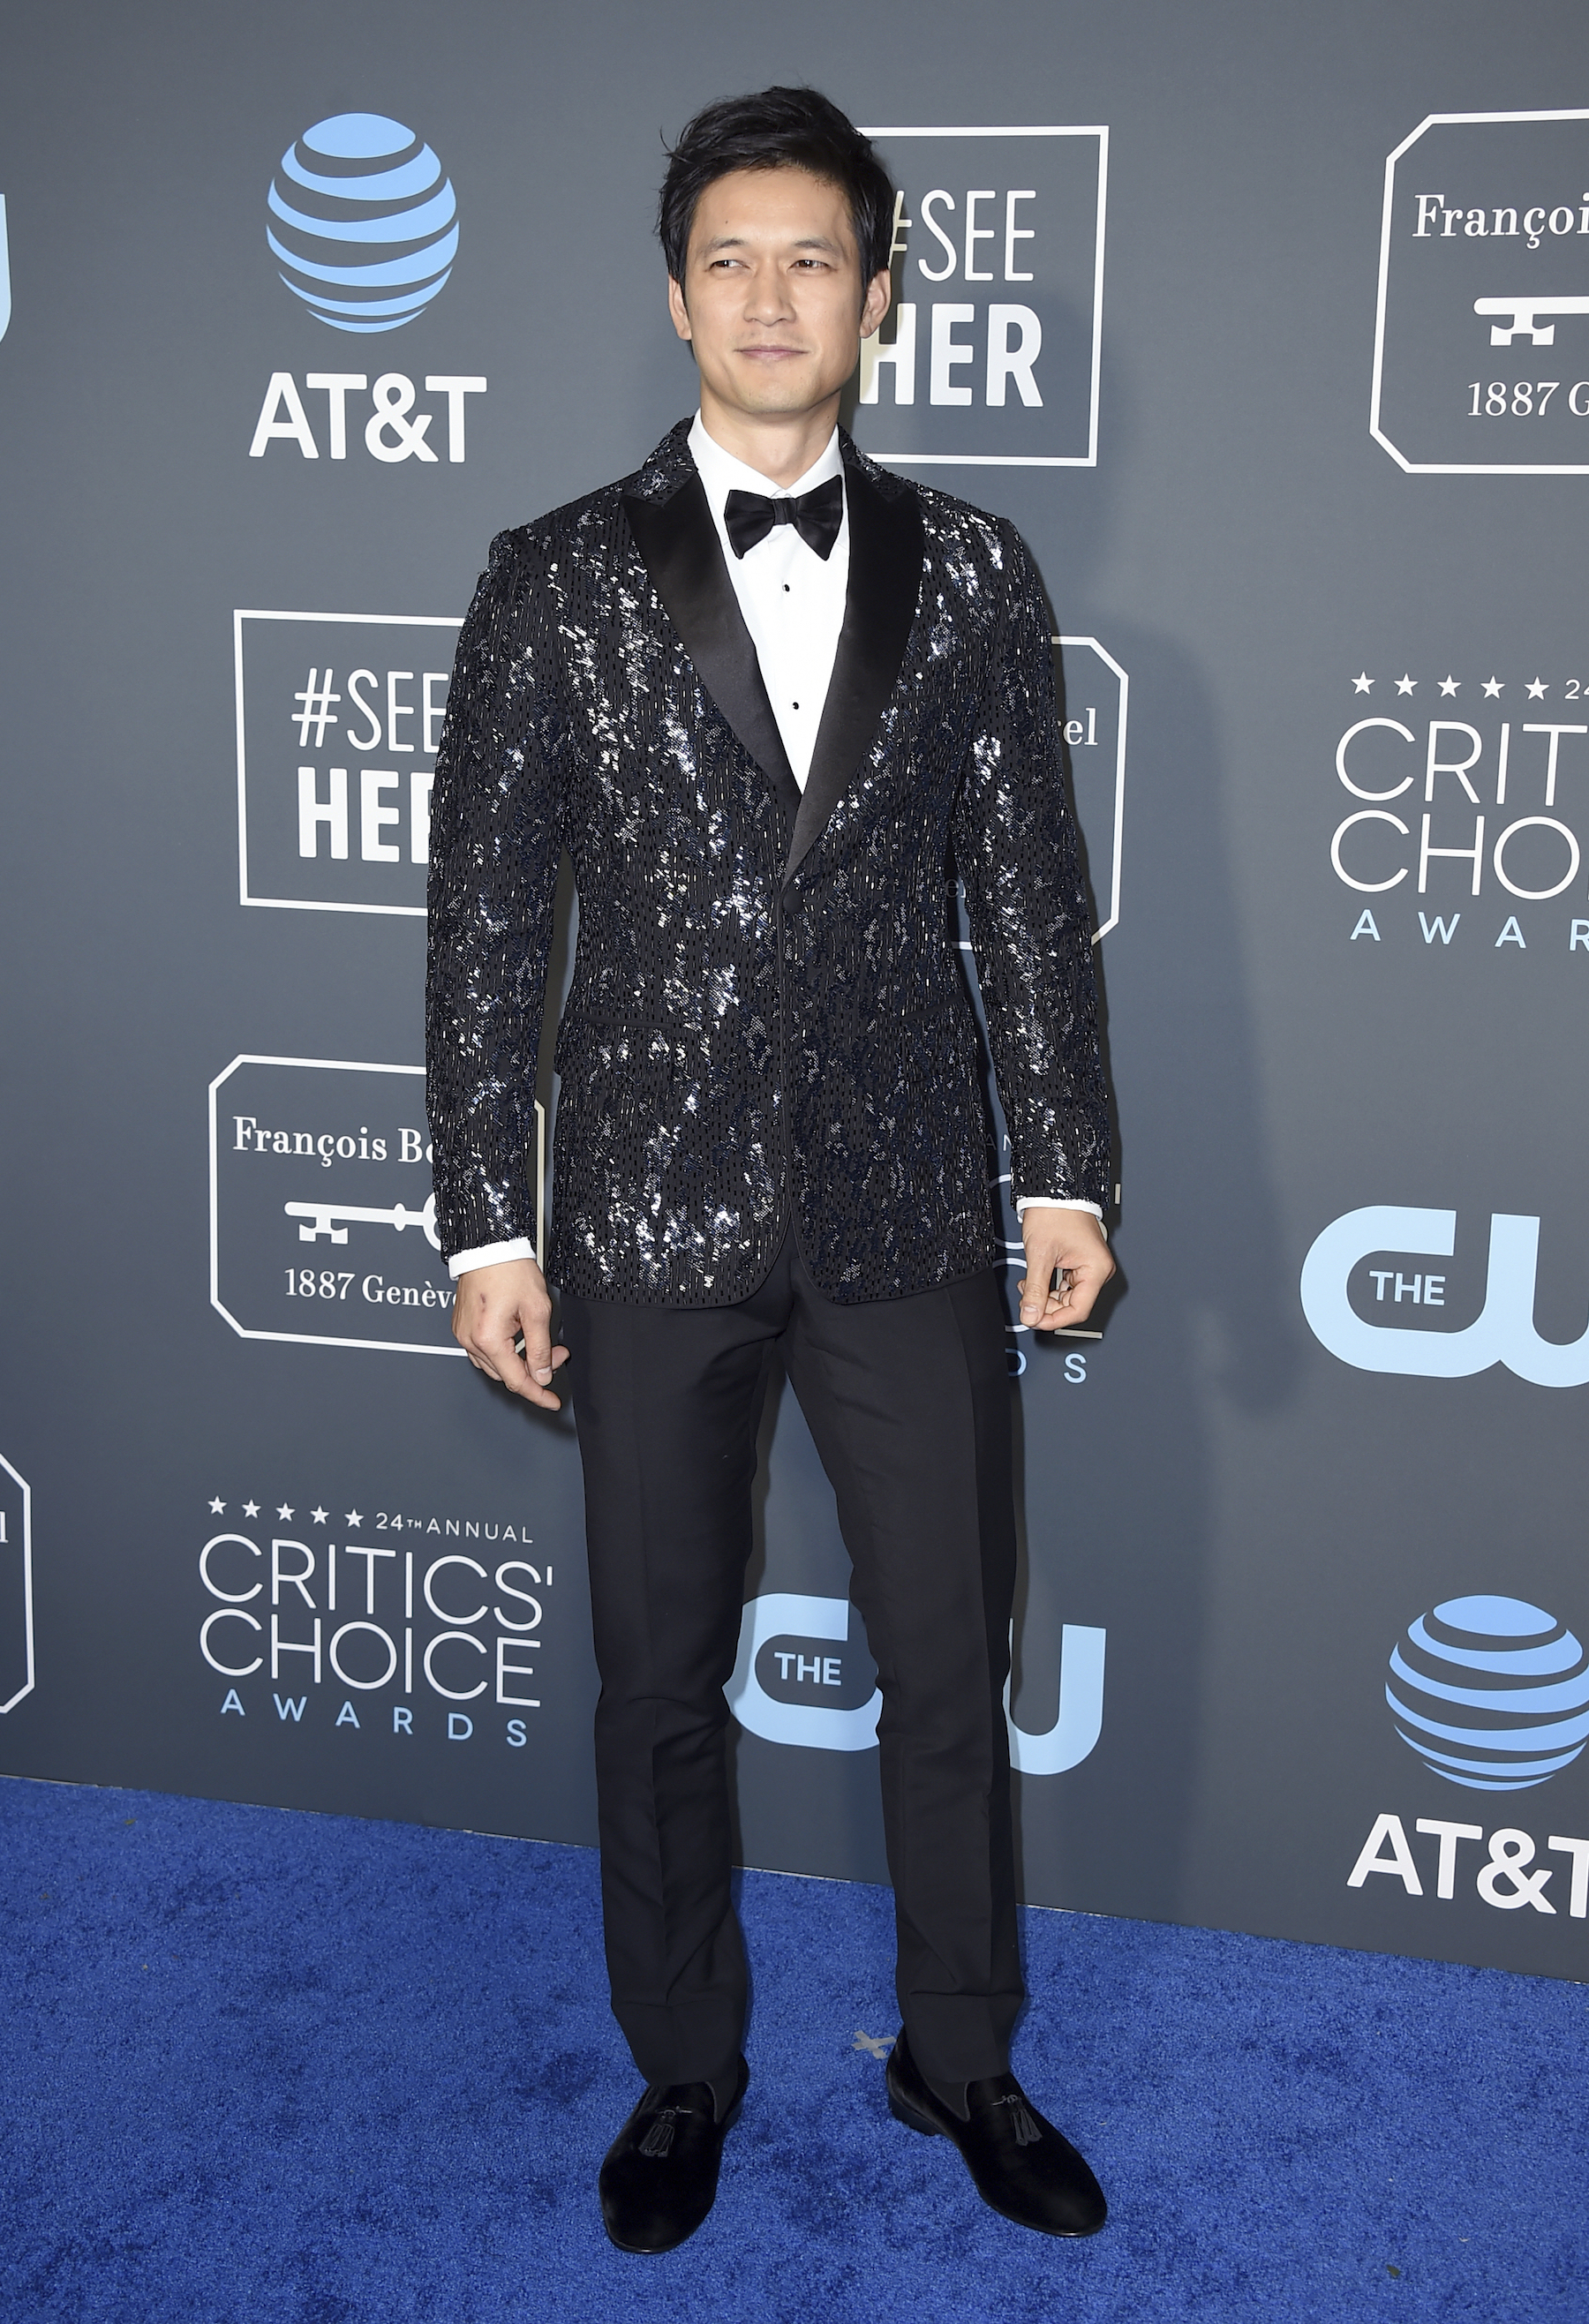 "<div class=""meta image-caption""><div class=""origin-logo origin-image ap""><span>AP</span></div><span class=""caption-text"">Harry Shum Jr. arrives at the 24th annual Critics' Choice Awards on Sunday, Jan. 13, 2019, at the Barker Hangar in Santa Monica, Calif. (Jordan Strauss/Invision/AP)</span></div>"